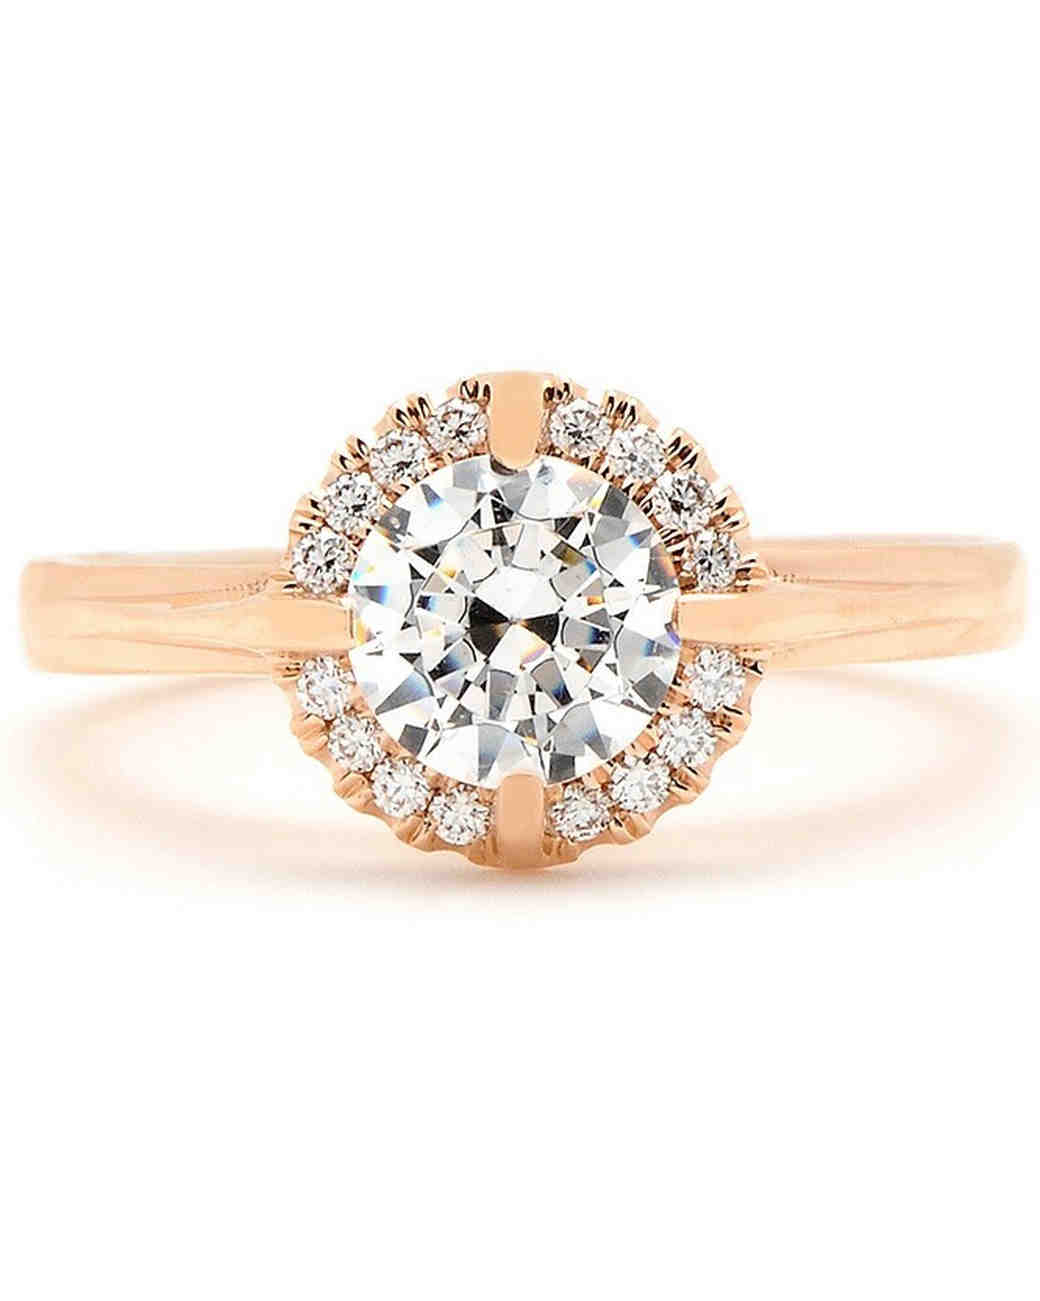 Sholdt Round Halo Engagement Ring in Rose Gold Setting